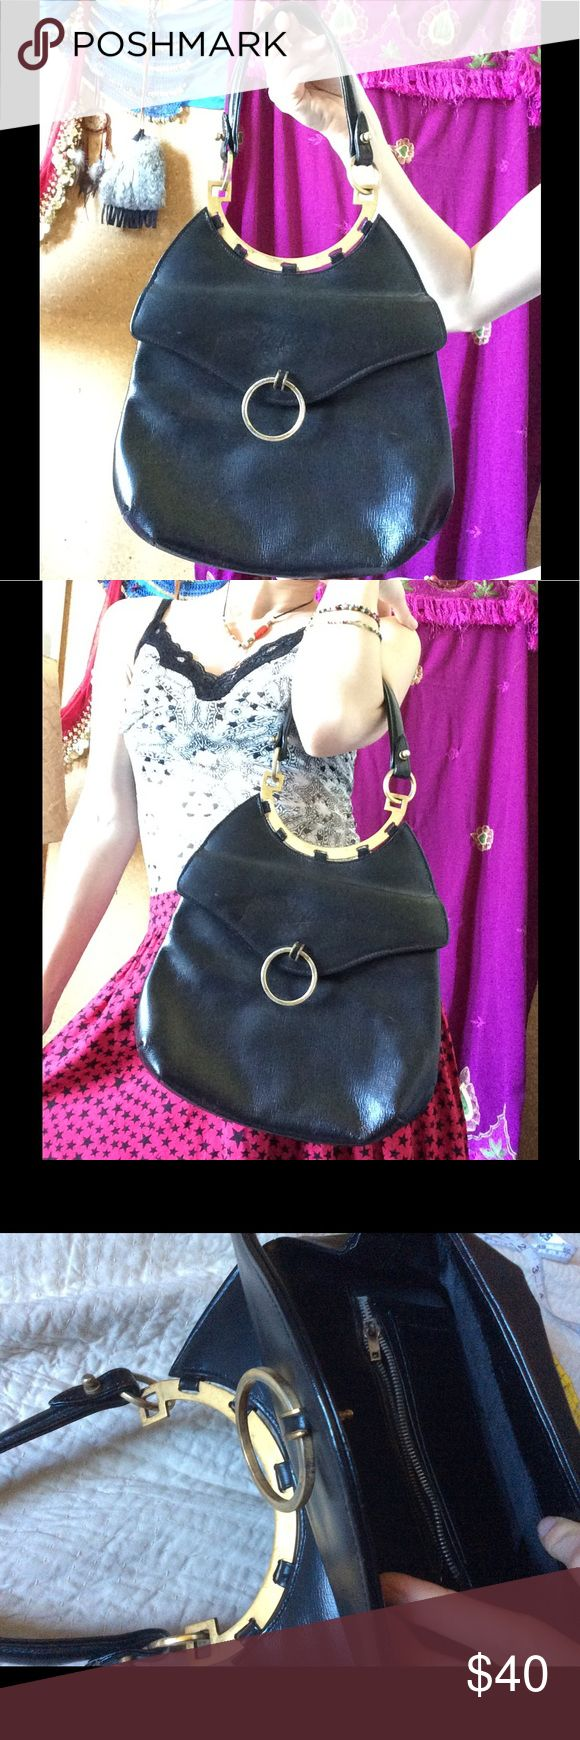 True Vintage Metal Moon 🌙 Arch Leather Purse Golden hardware. Black single strap handbag. Front flap that opens. Inner zipper is stuck from age. Mod, space and simple chic. Complete your Viva Las Vegas outfit. 60's. Mod. The curving metal arch reminds me of Egyptian collar necklaces. (I actually got this at the same sale I bout some Miss Egypt Couture dresses - le Cairo) circle keychain on front could have feathers, tassels or fringe added for fun. Good condition. No outer scratches. Smoke…